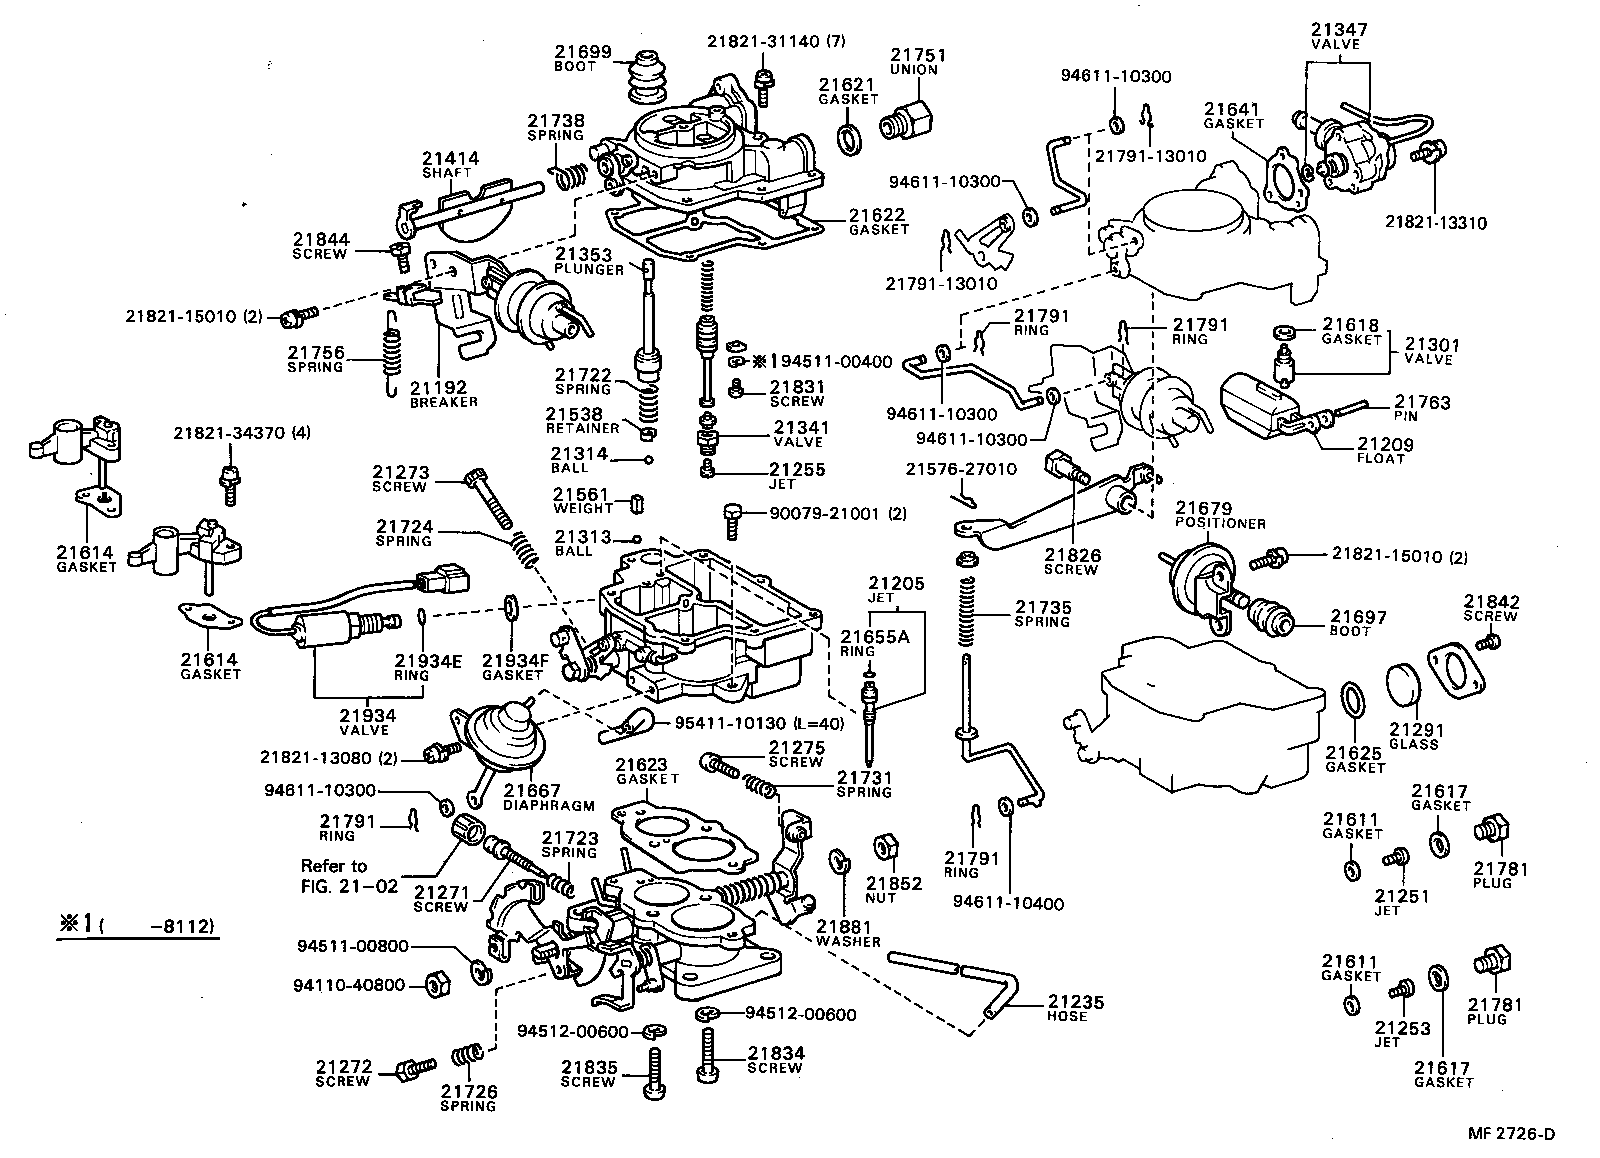 corolla parts diagram wiring diagram schema blogcorolla parts diagram wiring diagram 2013 toyota corolla parts diagram 2010 toyota corolla engine diagram japanpartseu